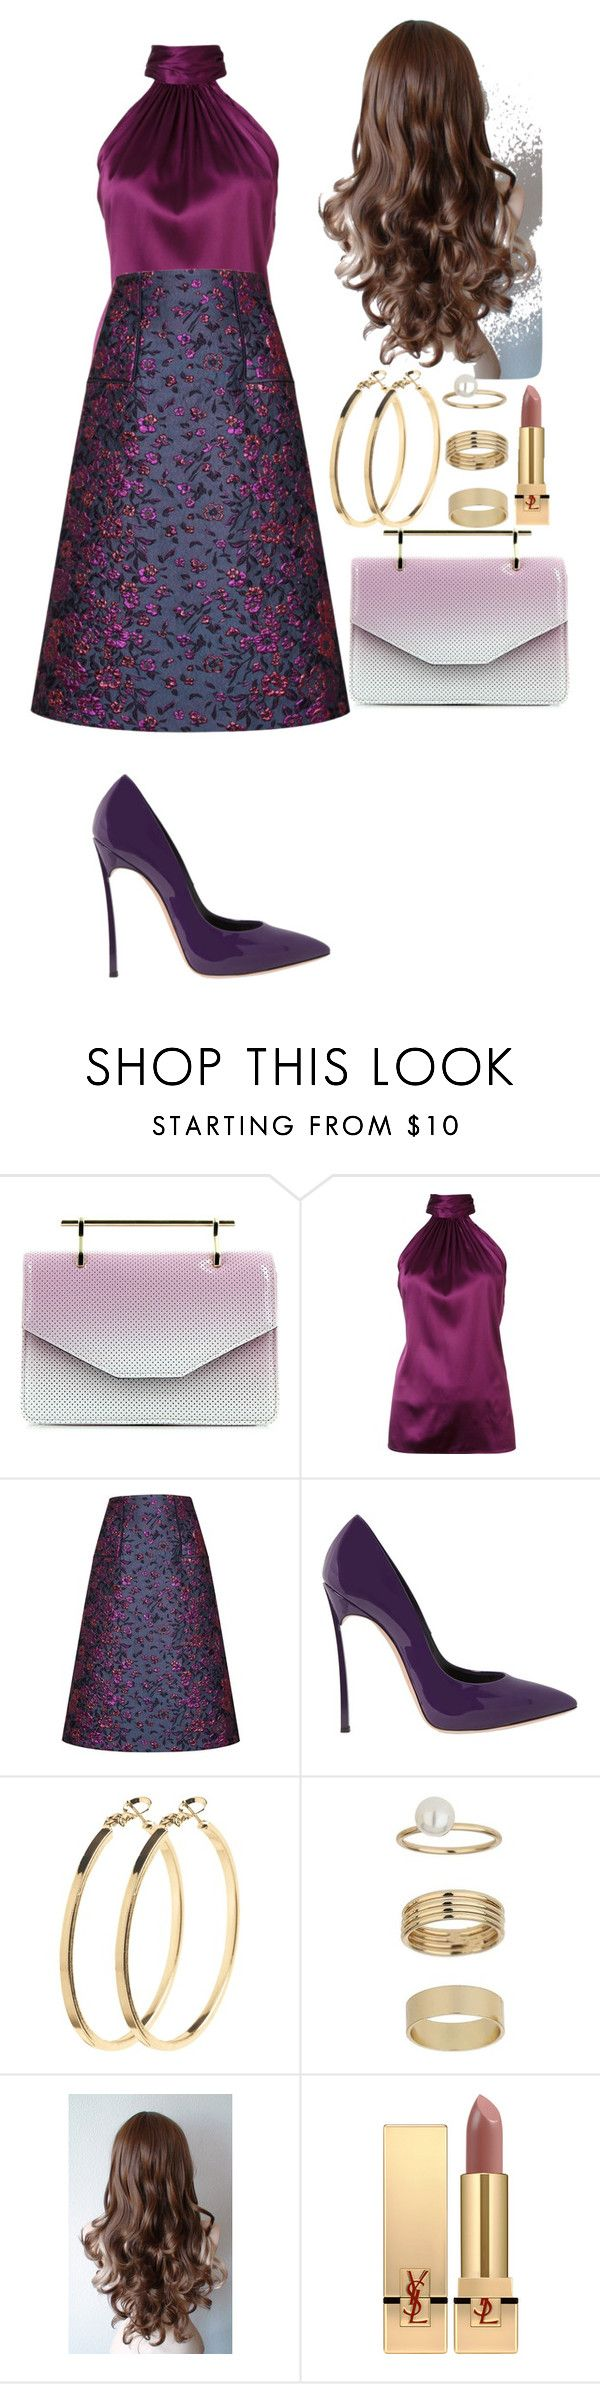 """""""Untitled #307"""" by aalniz-ssistrs ❤ liked on Polyvore featuring M2Malletier, Ramy Brook, Talbot Runhof, Casadei, Pieces, Miss Selfridge and Yves Saint Laurent"""